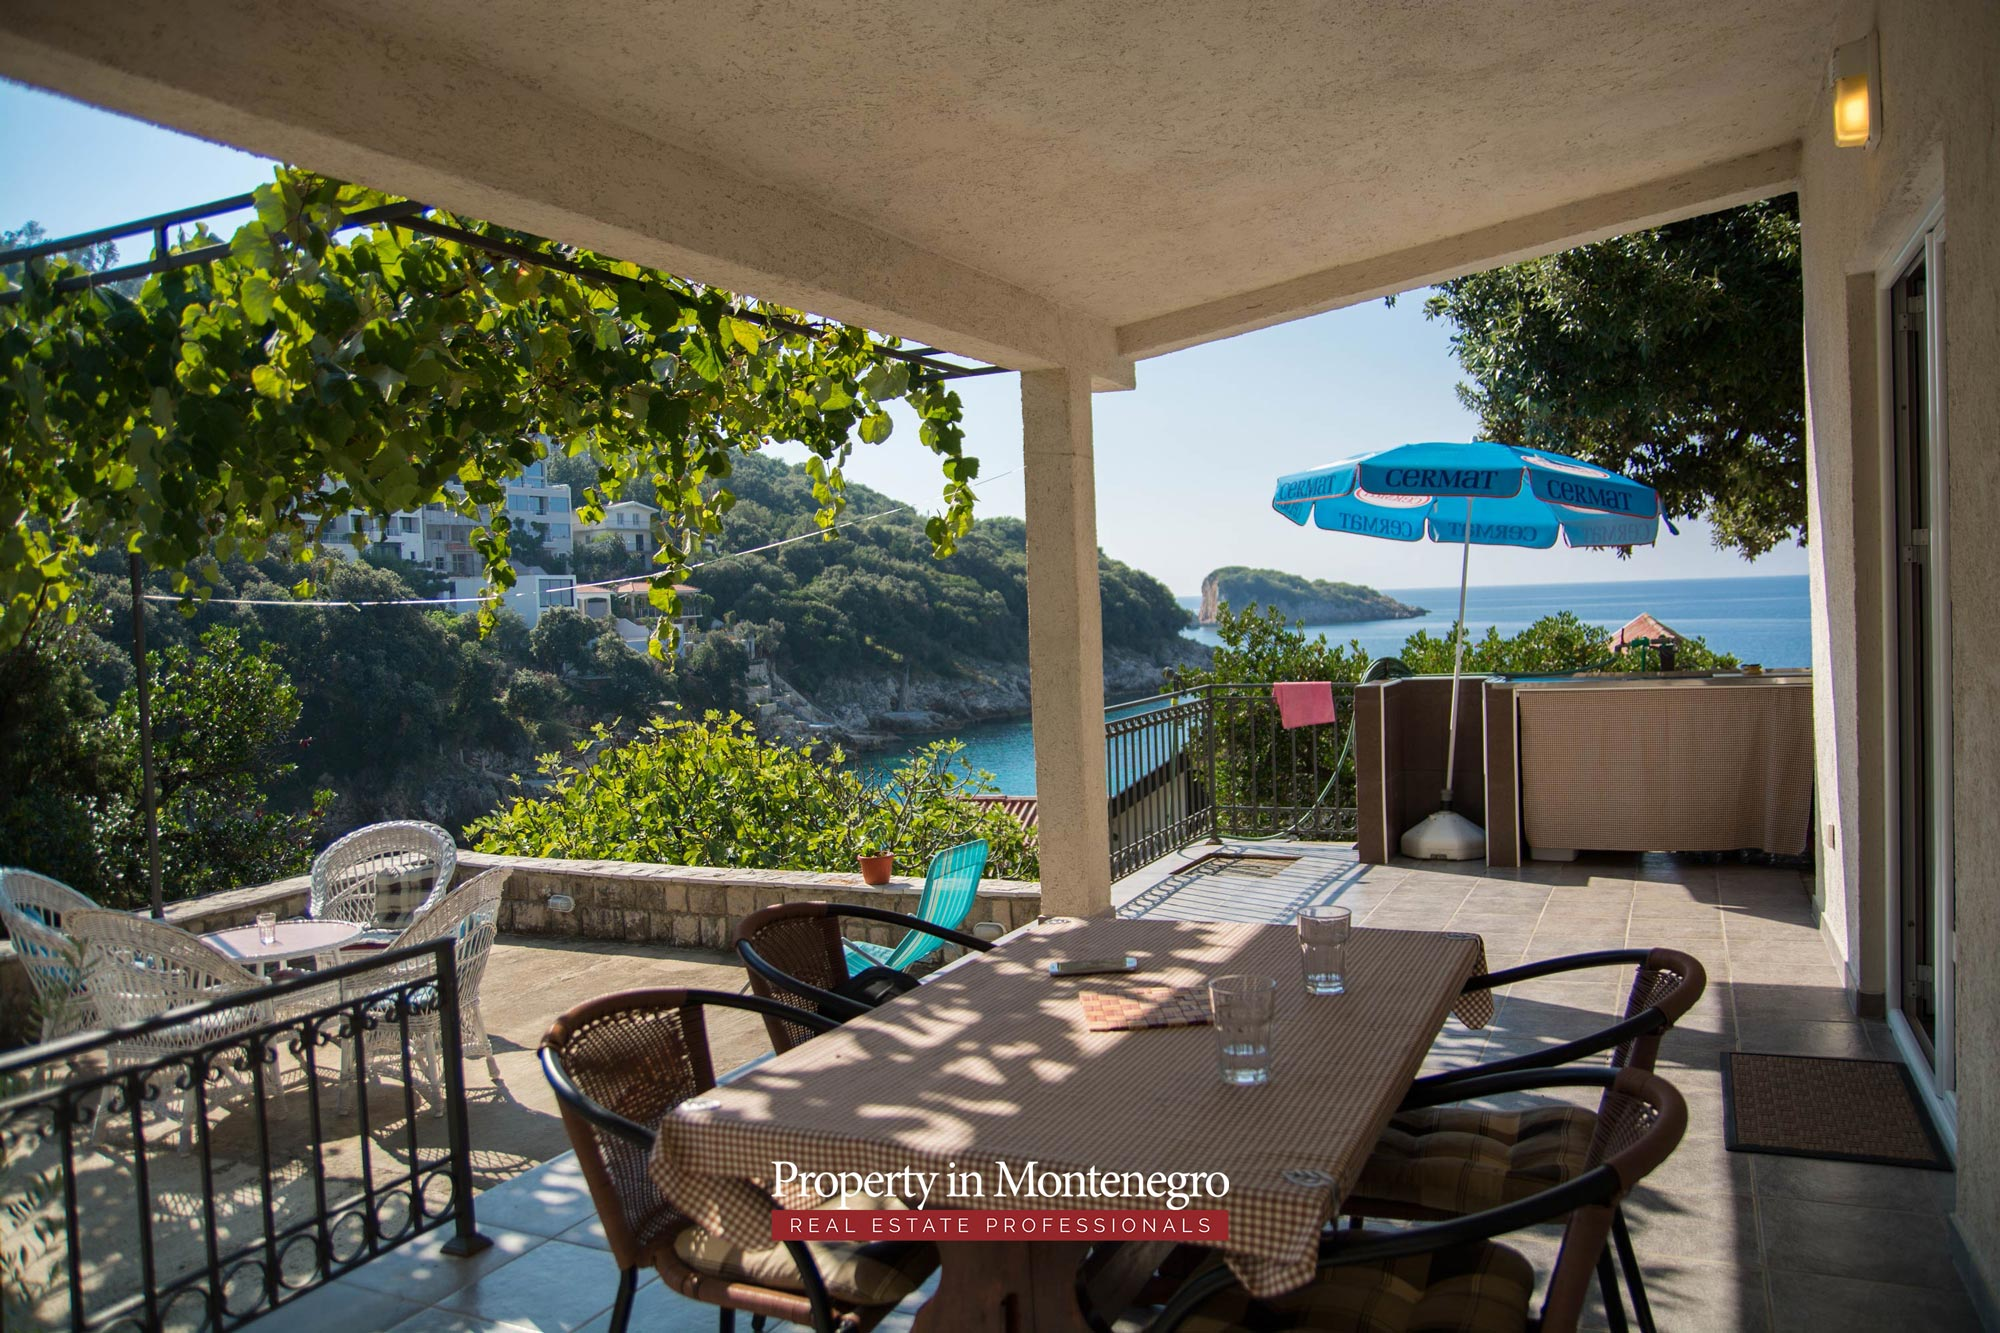 House with seaview for sale in Bar